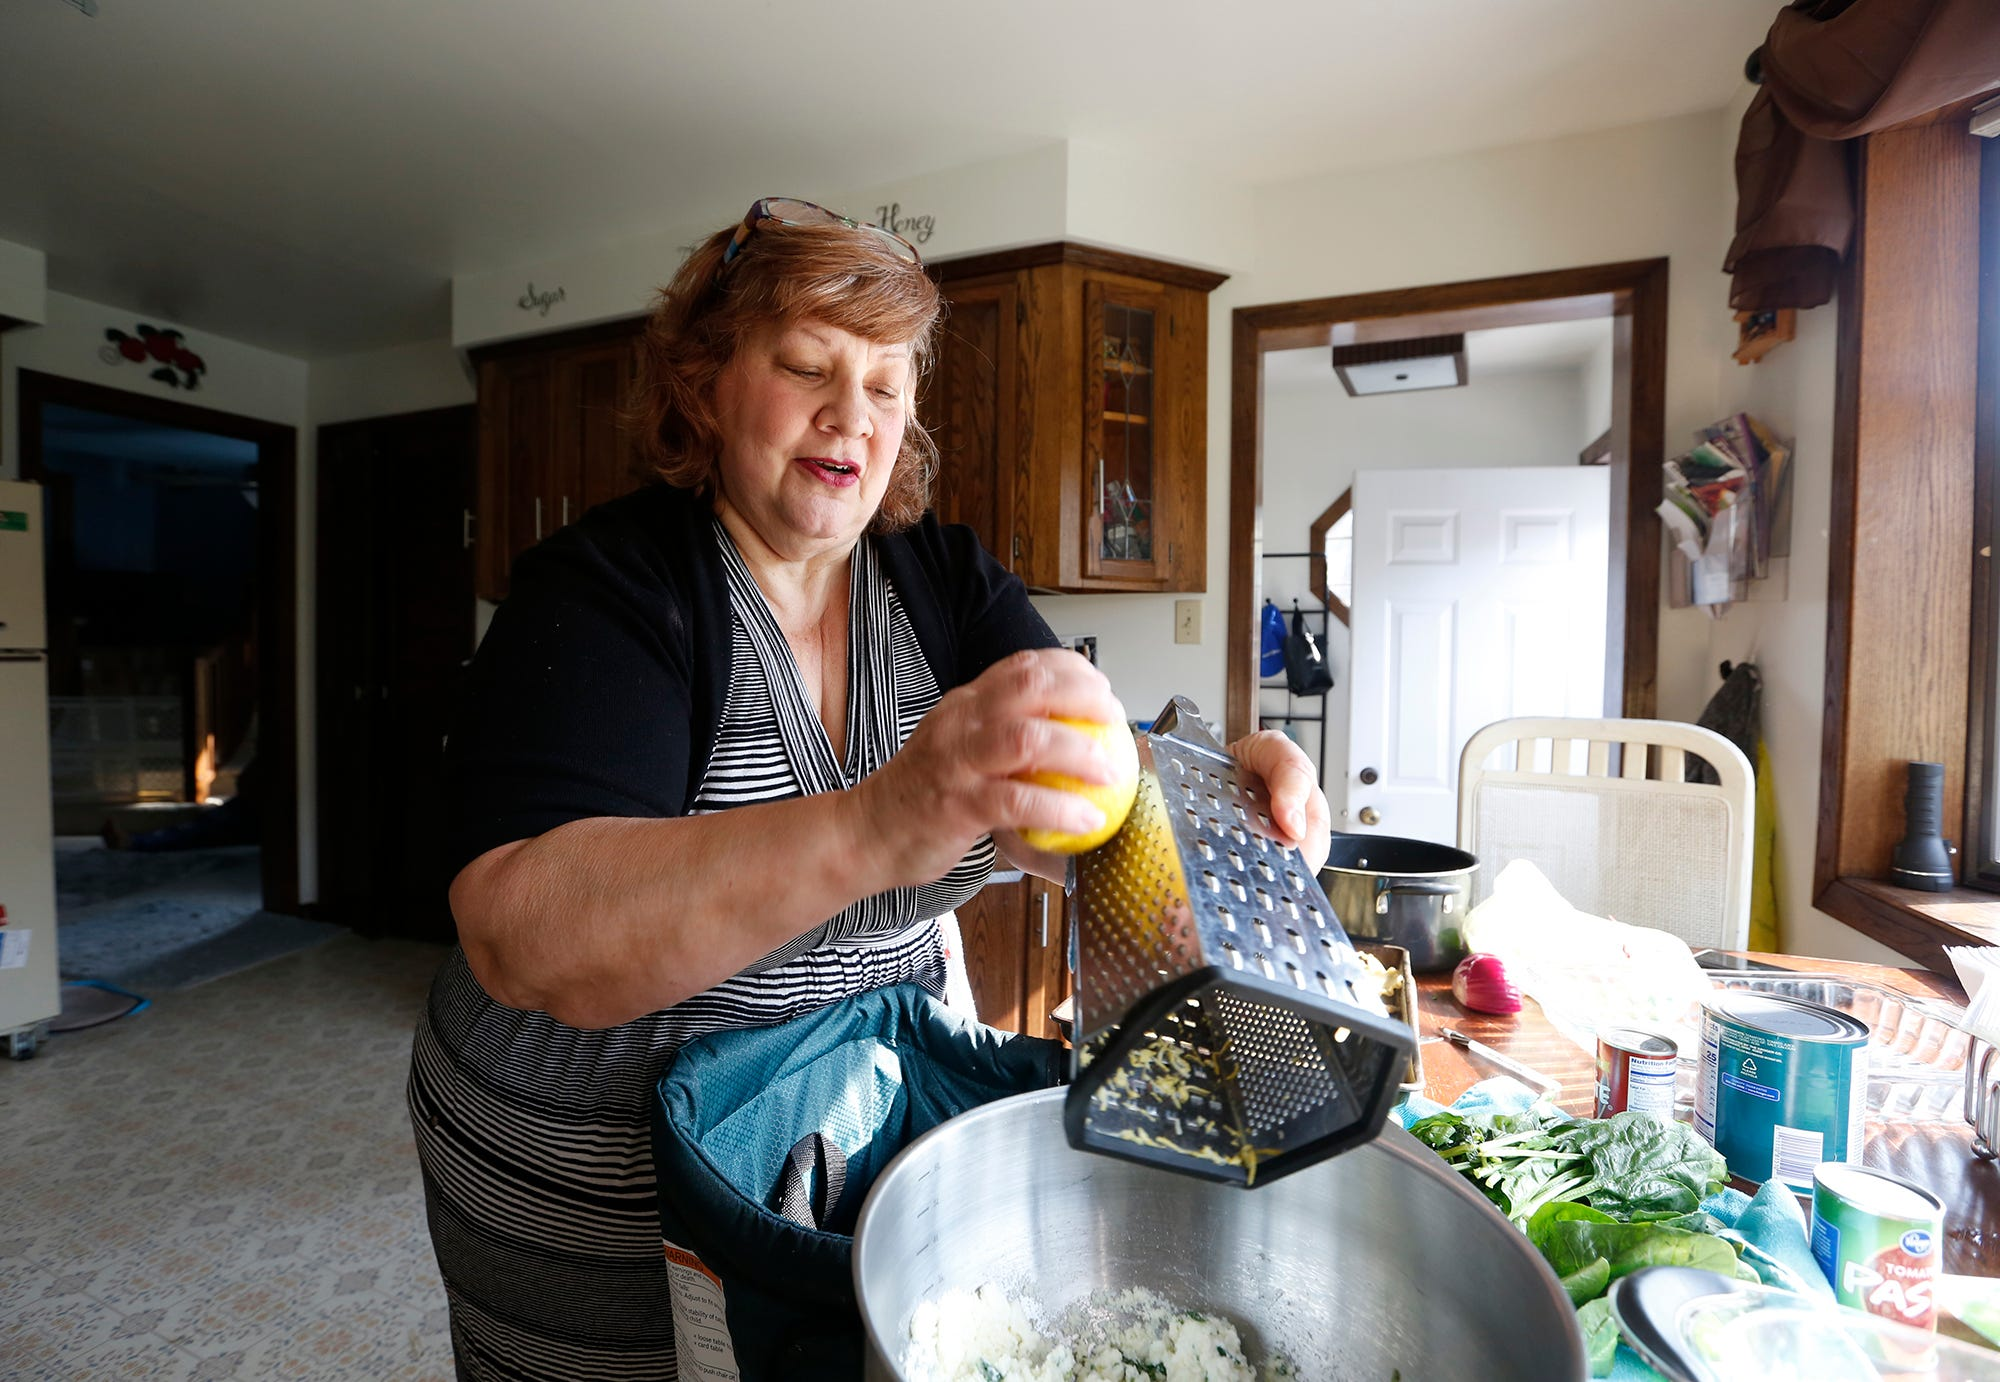 Cindy Martinez of Fond du Lac cooks lunch for her daughter and granddaughter in her kitchen. Martinez was laid off from her job this spring when COVID-19 struck. She finds fulfillment in mentoring young women who have experienced emotional trauma.